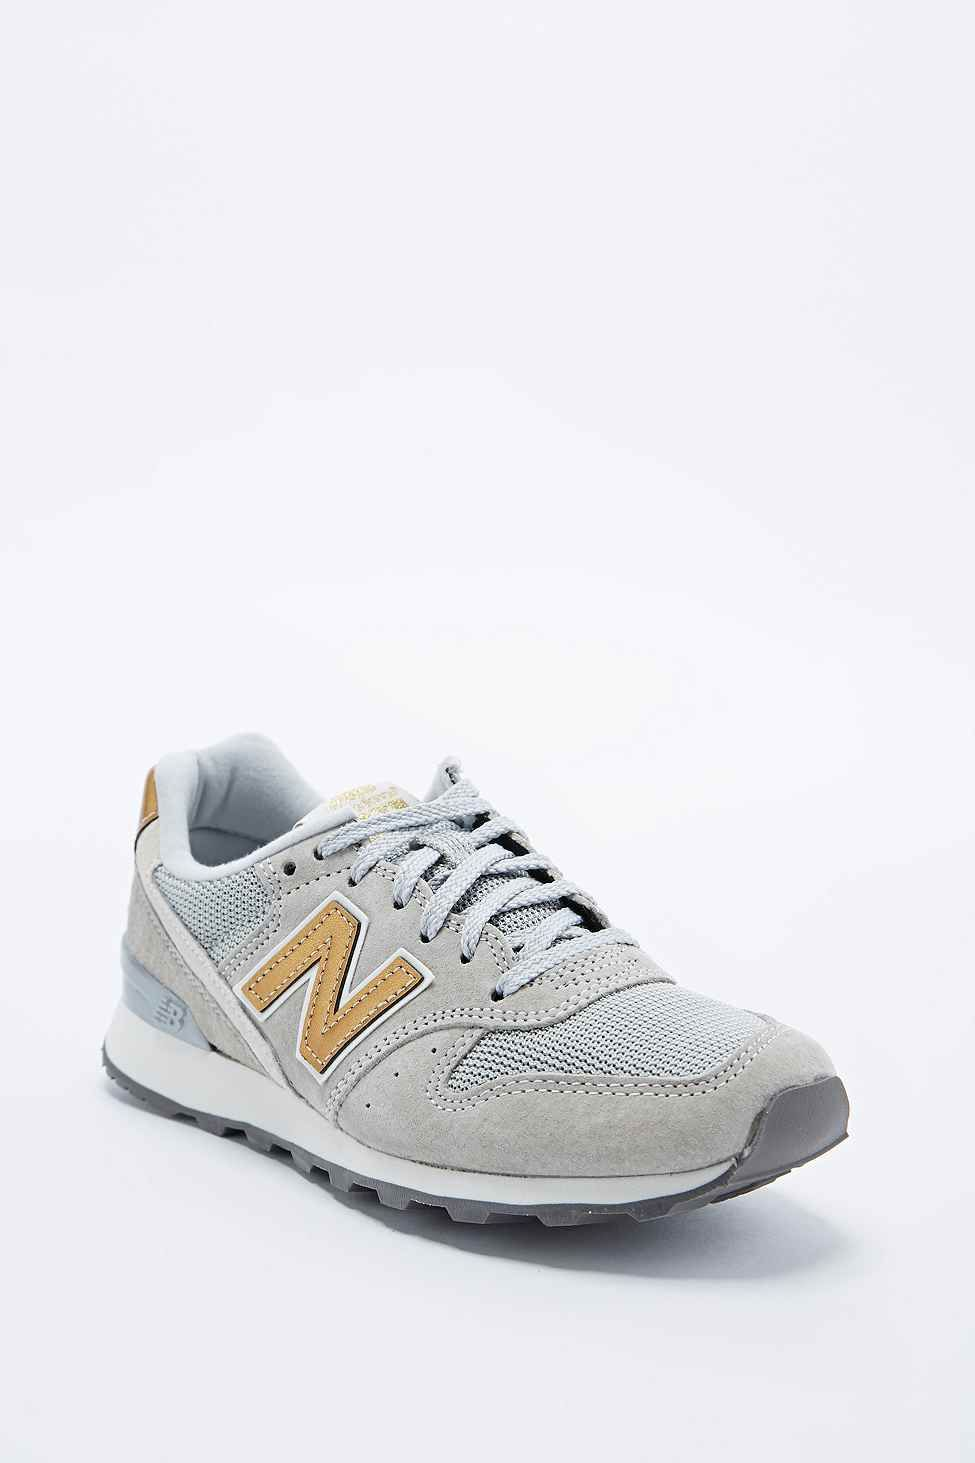 new balance 996 stone vintage leather & mesh sneakers